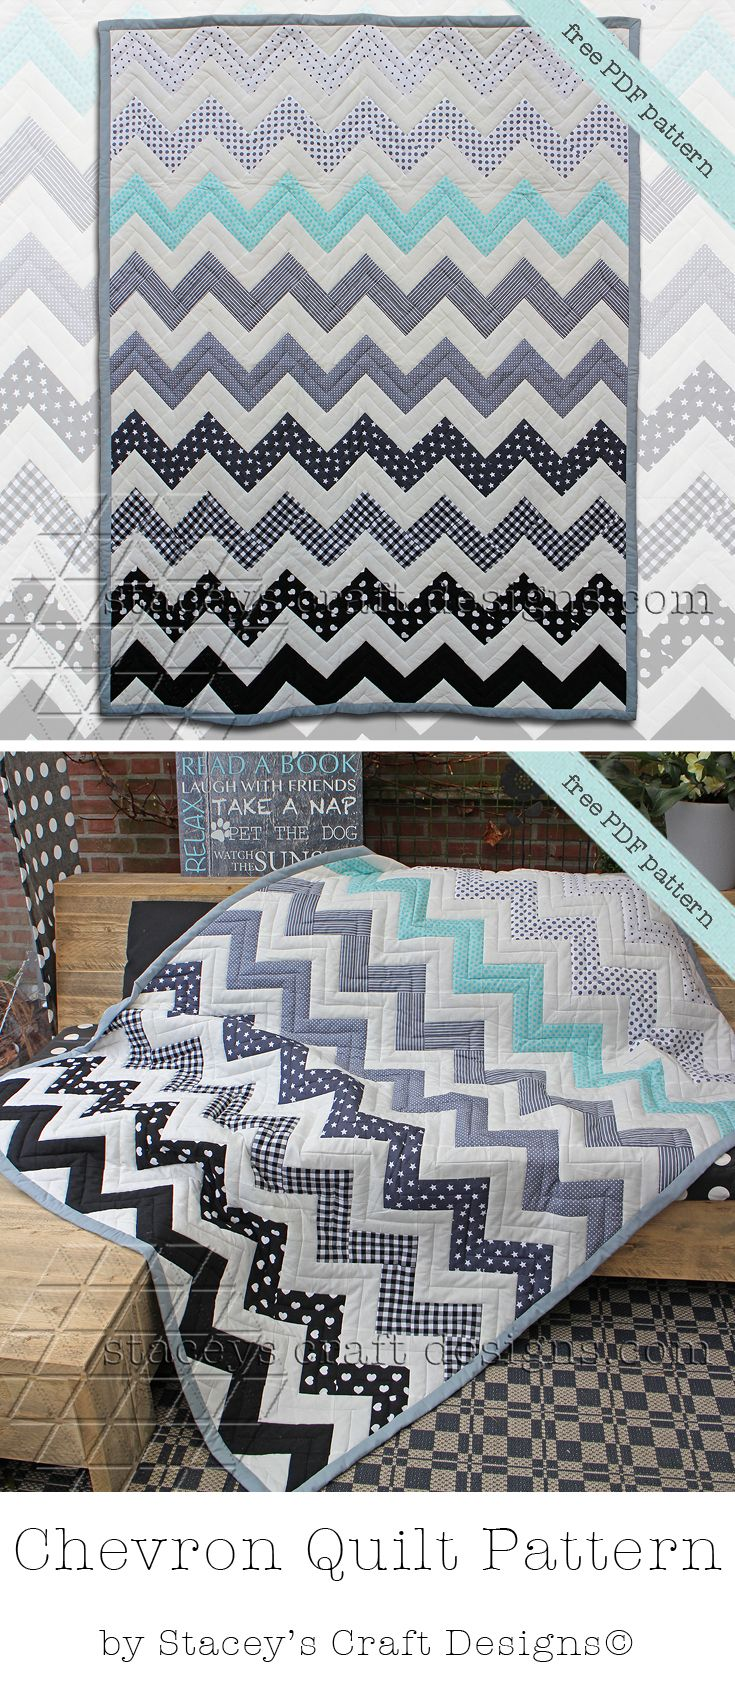 graphic regarding Free Printable Chevron Quilt Pattern identified as Do-it-yourself Wedding day Recommendations Aspect 2 quilts Chevron quilt habit